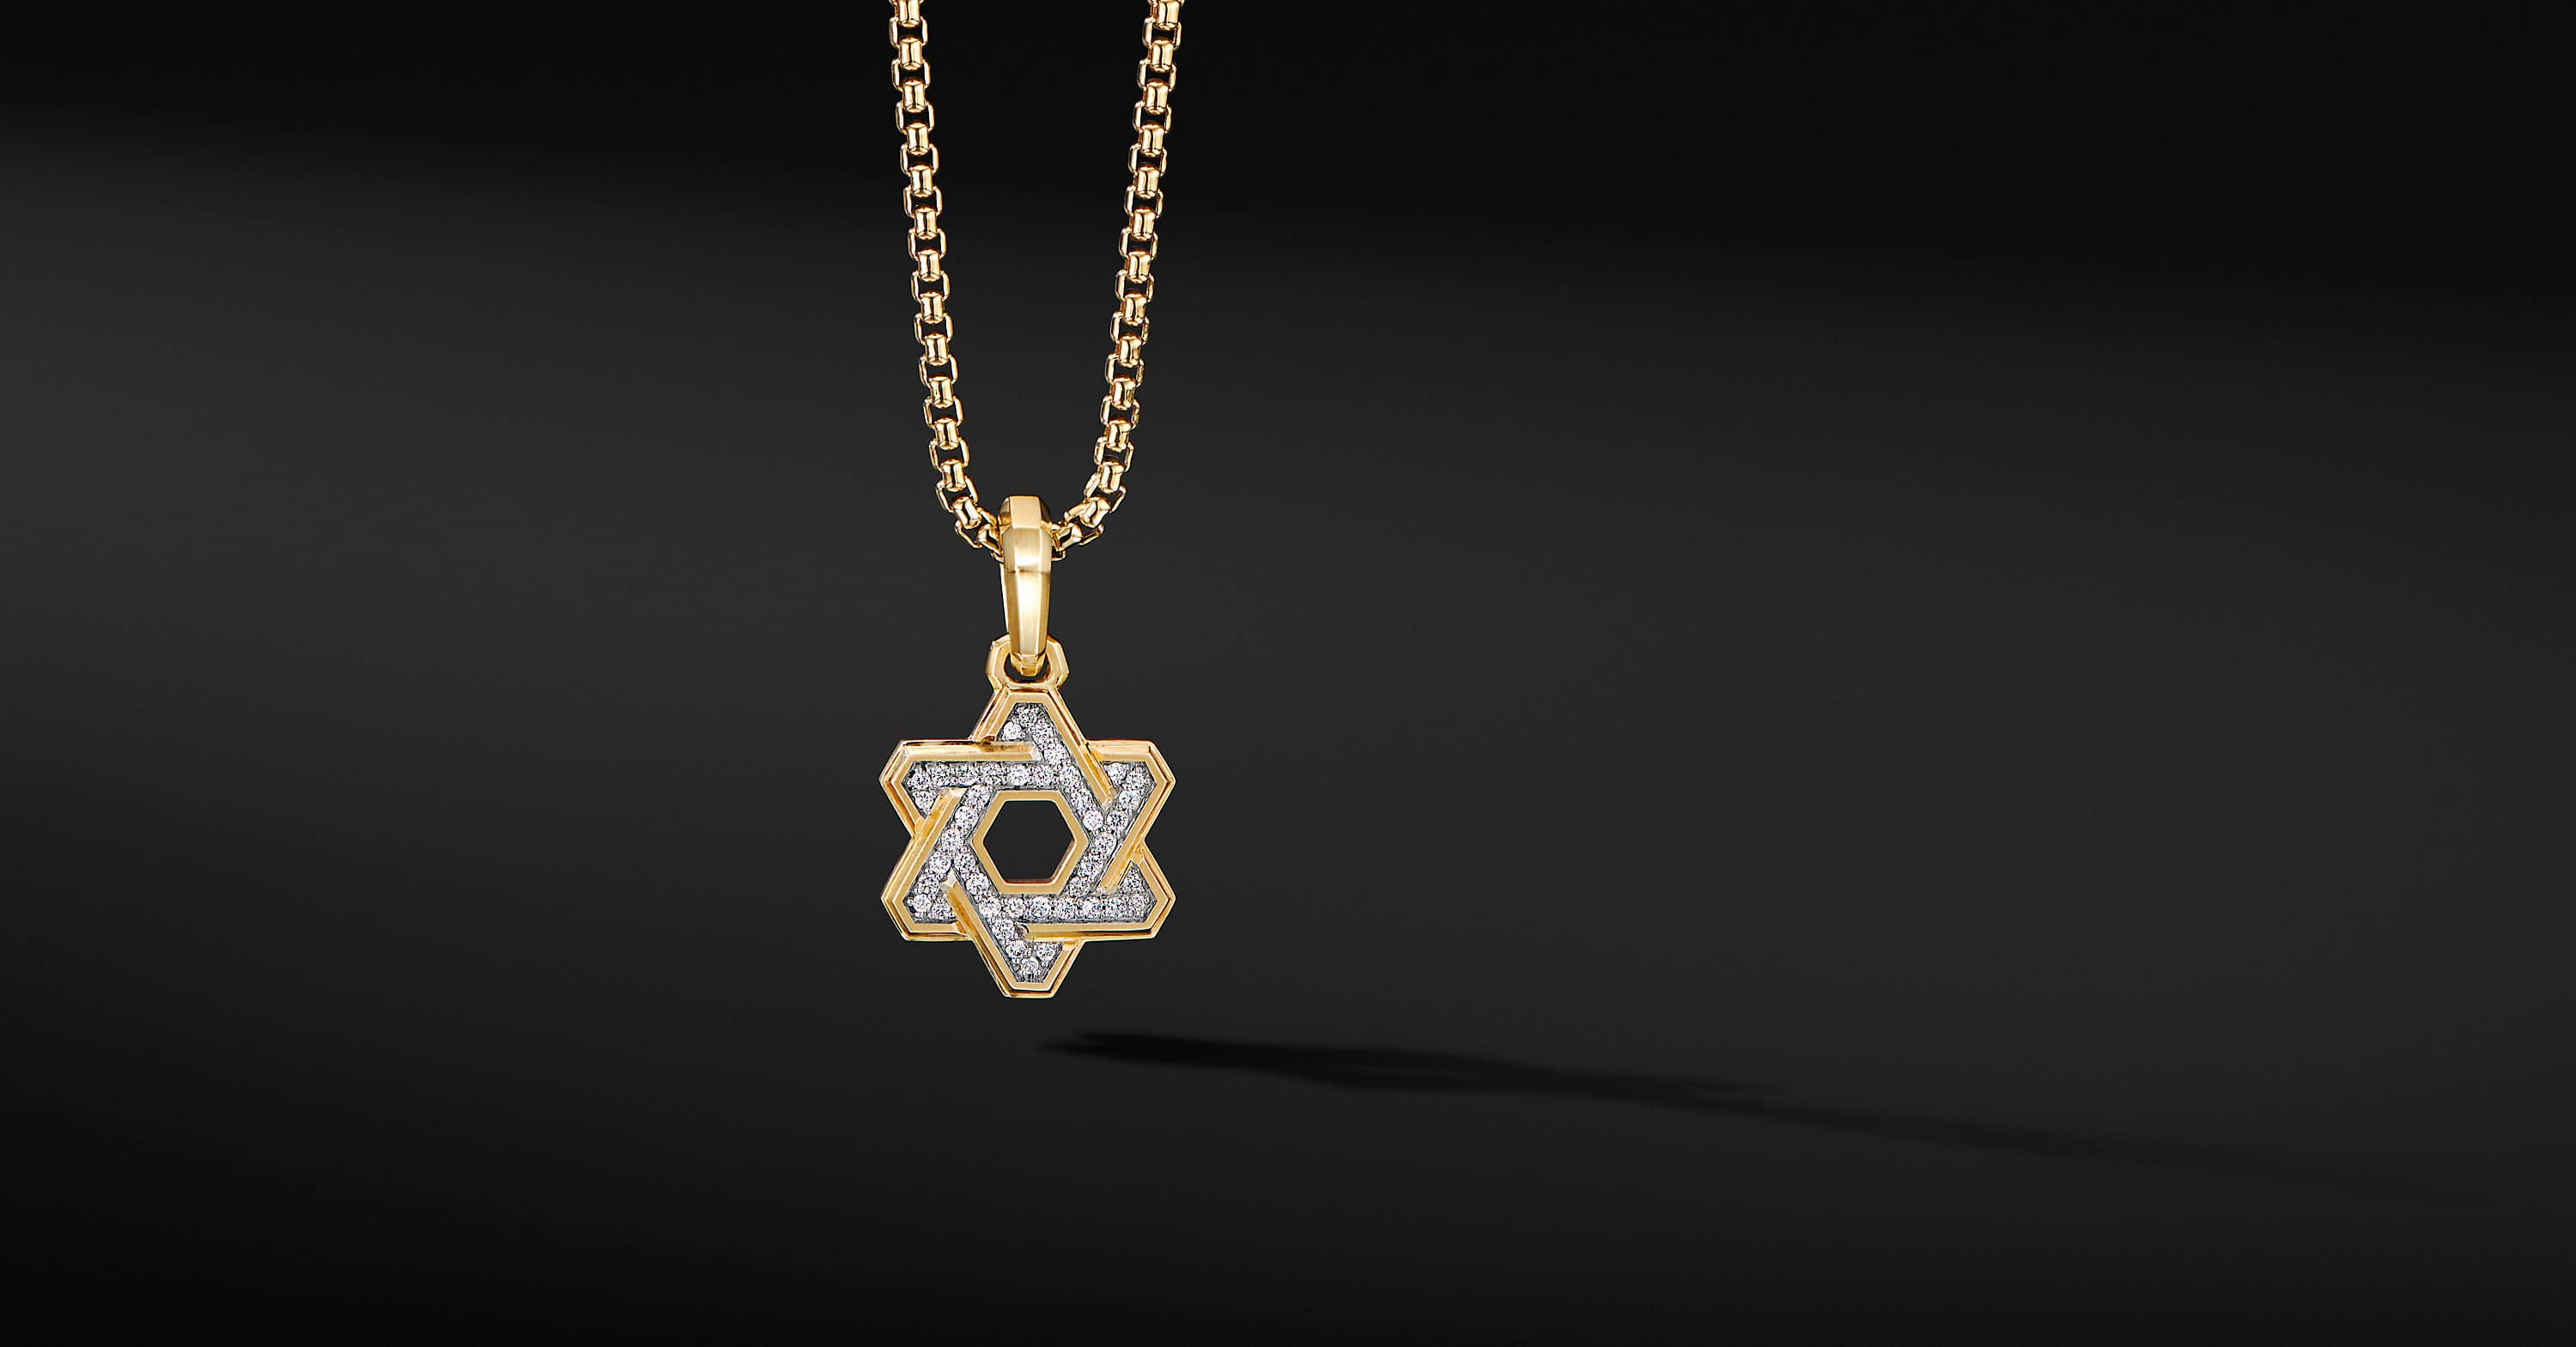 Deco Star of David Pendant in 18K Yellow Gold